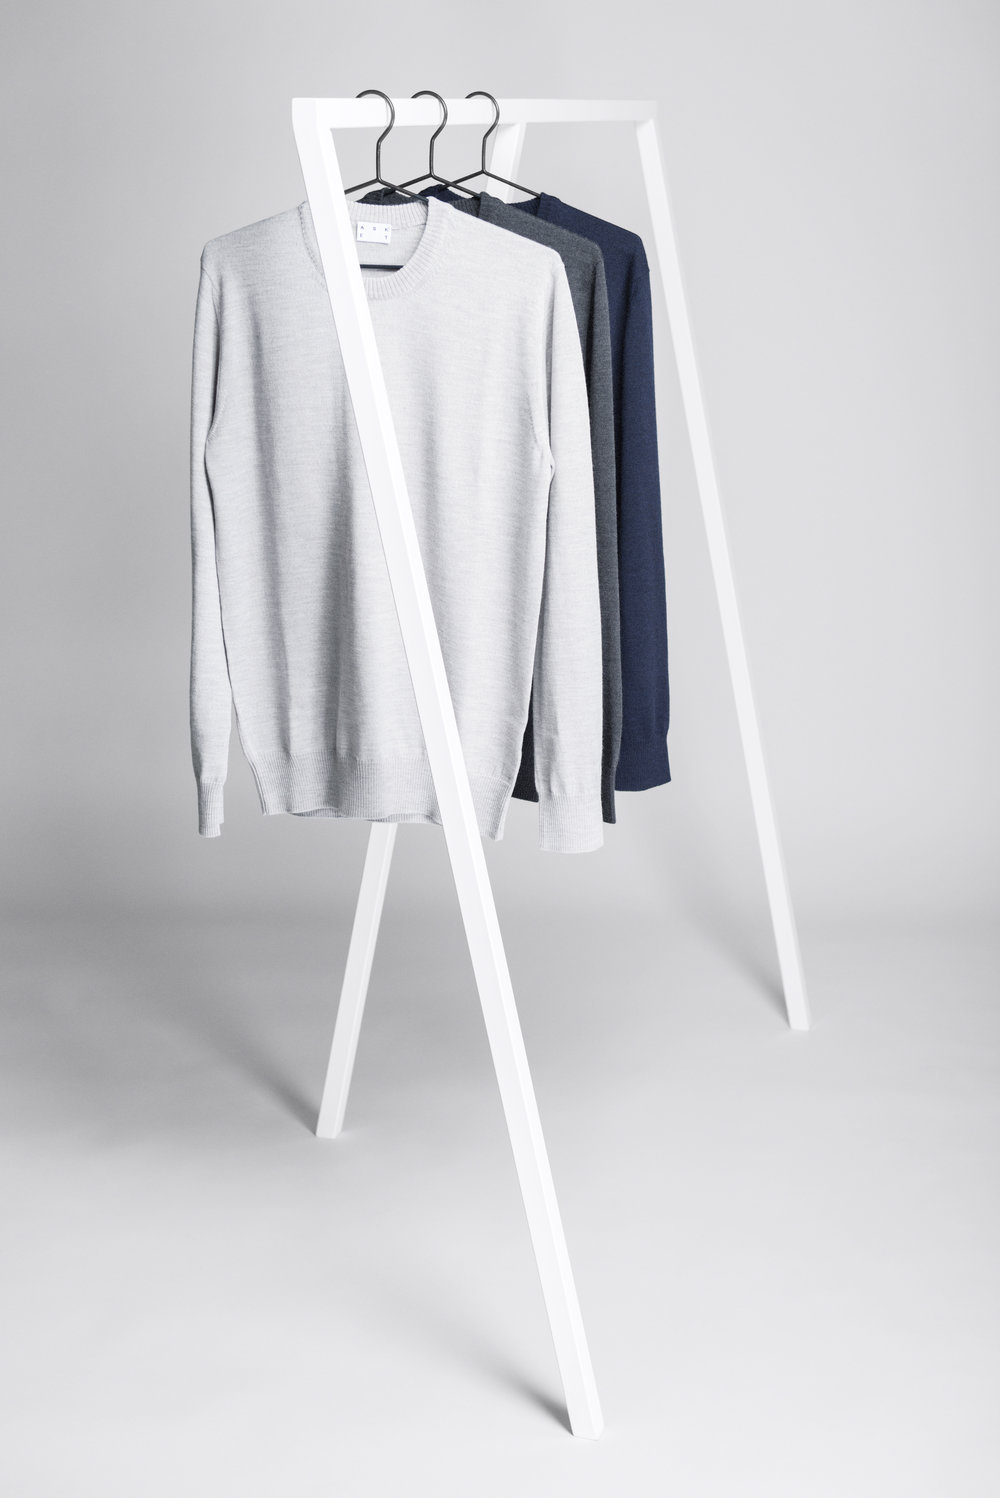 Extra-Fine Australian Merino Wool   Sweater   by   ASKET | Stockholm   € 85    LEARN MORE